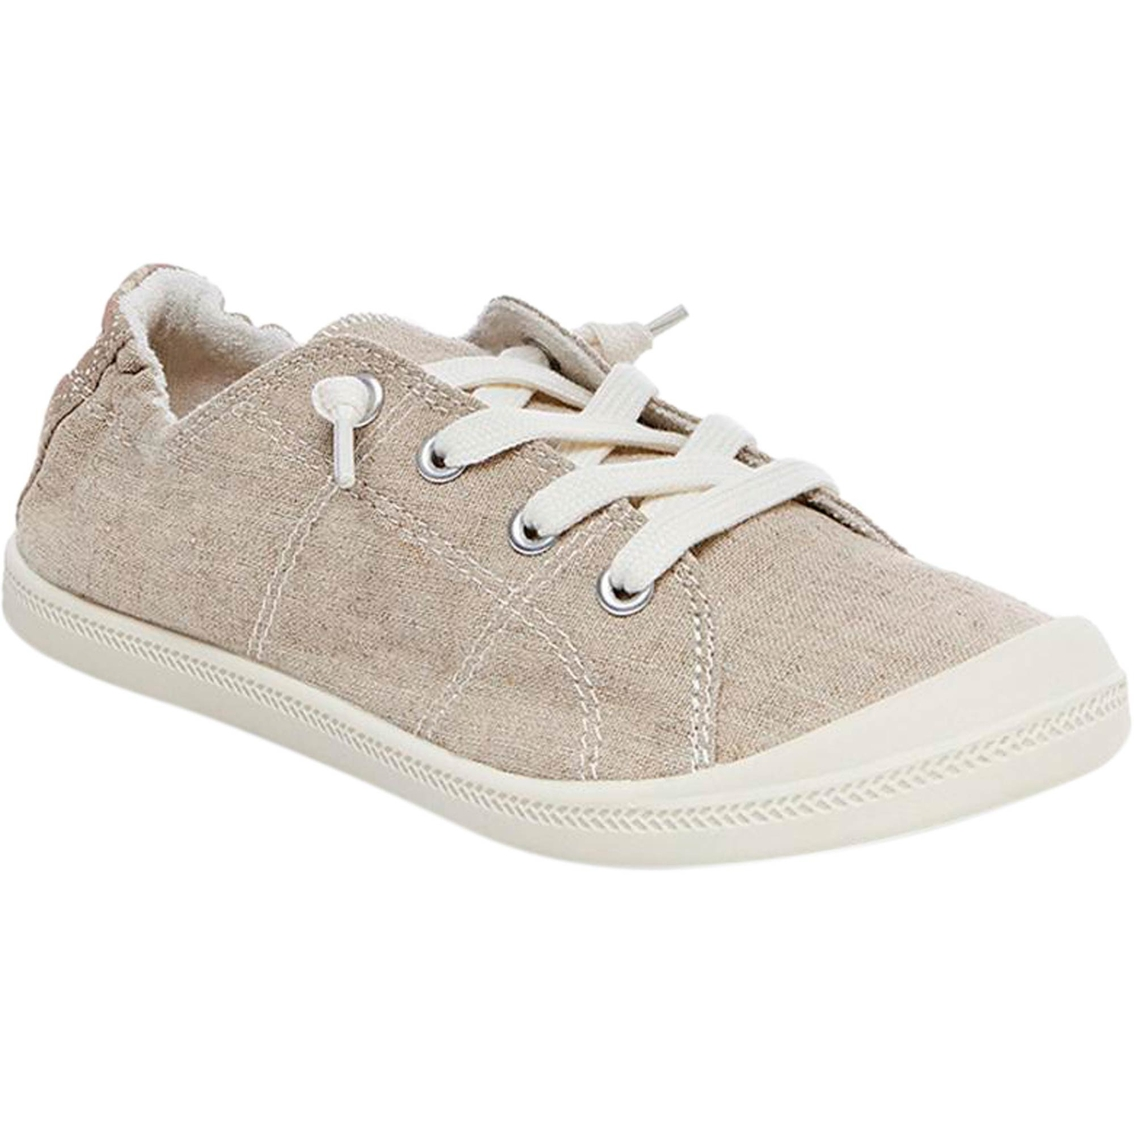 Madden Girl Bailey Lace Up Sneakers